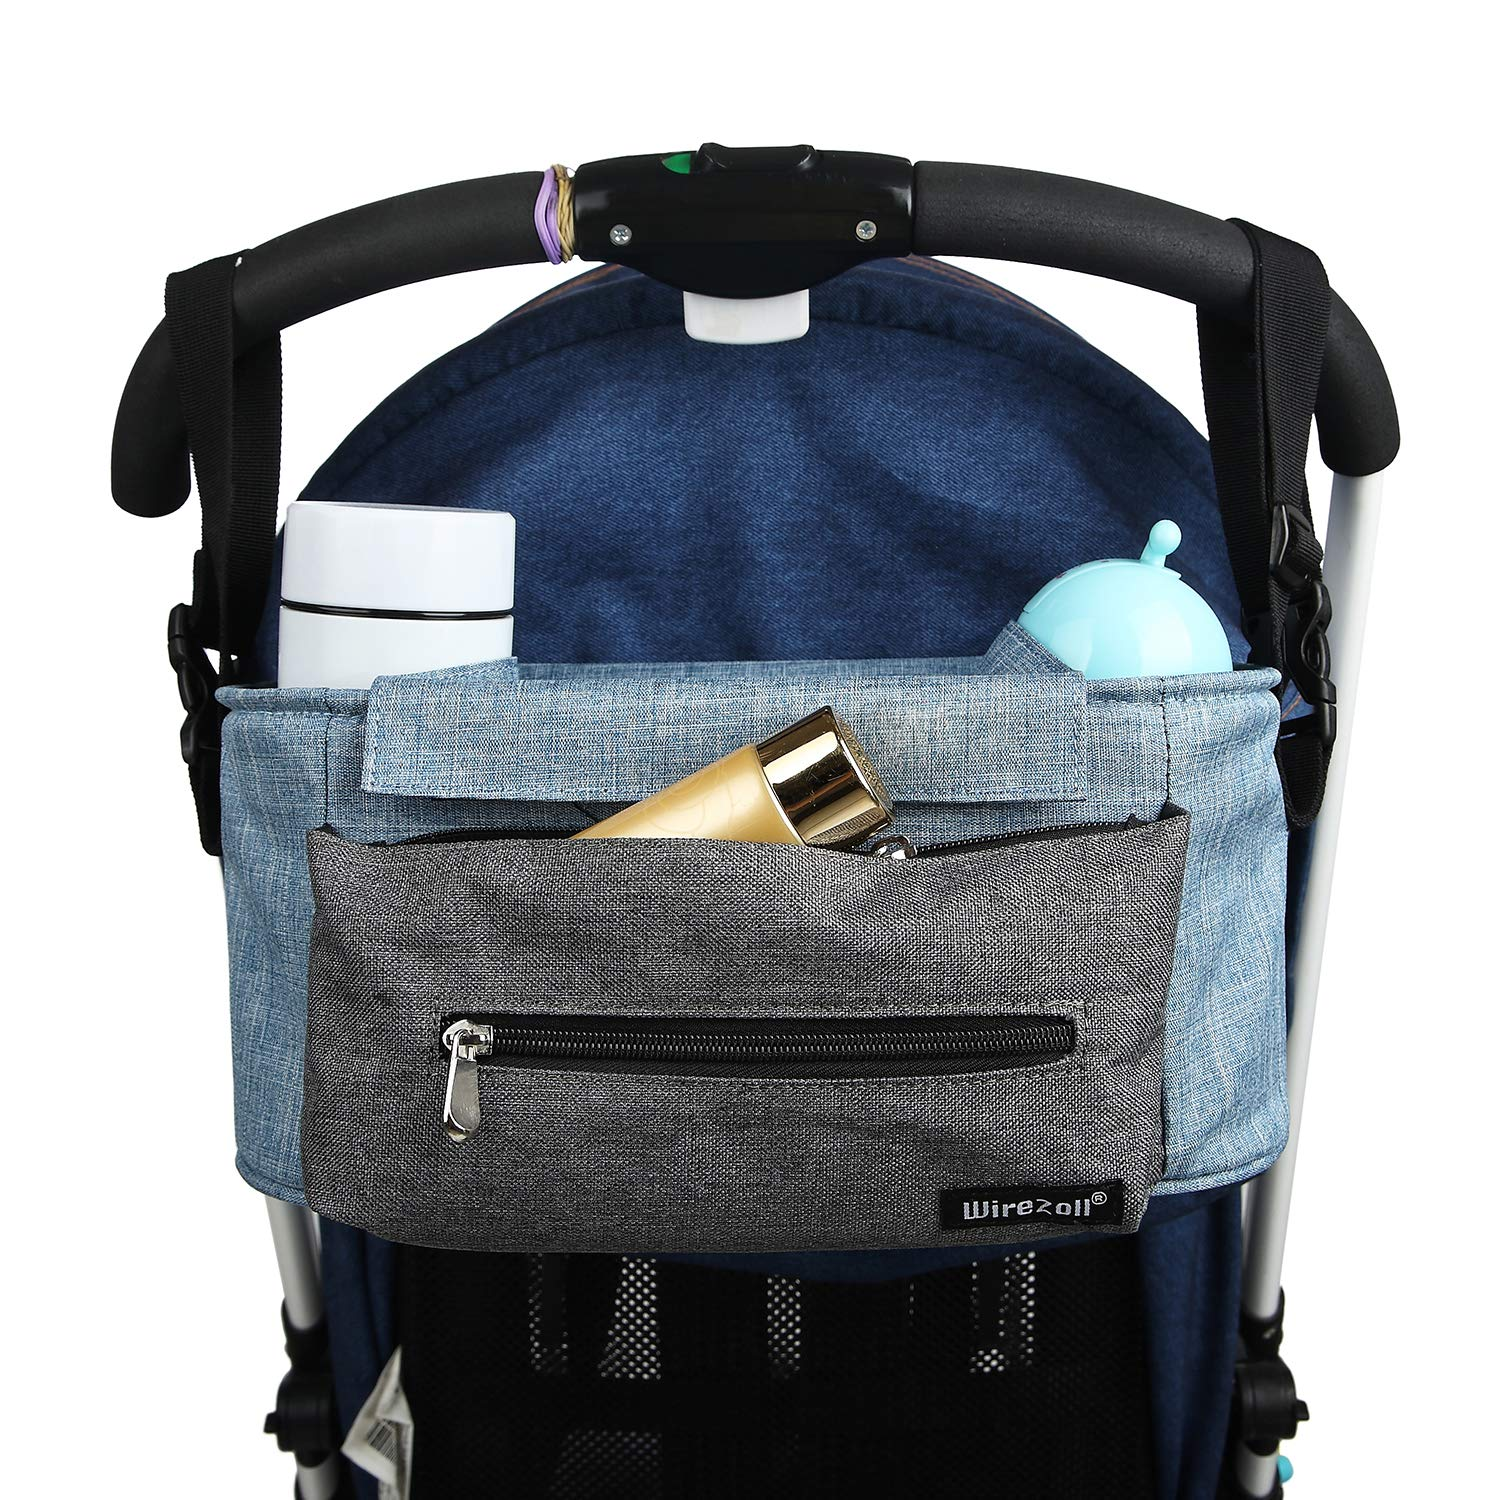 Wirezoll Buggy Organiser, Big Capacity Stroller Organiser for iPhone, Diapers, Toys and Accessories, with Compartment, Plus Shoulder Strap (Blue)